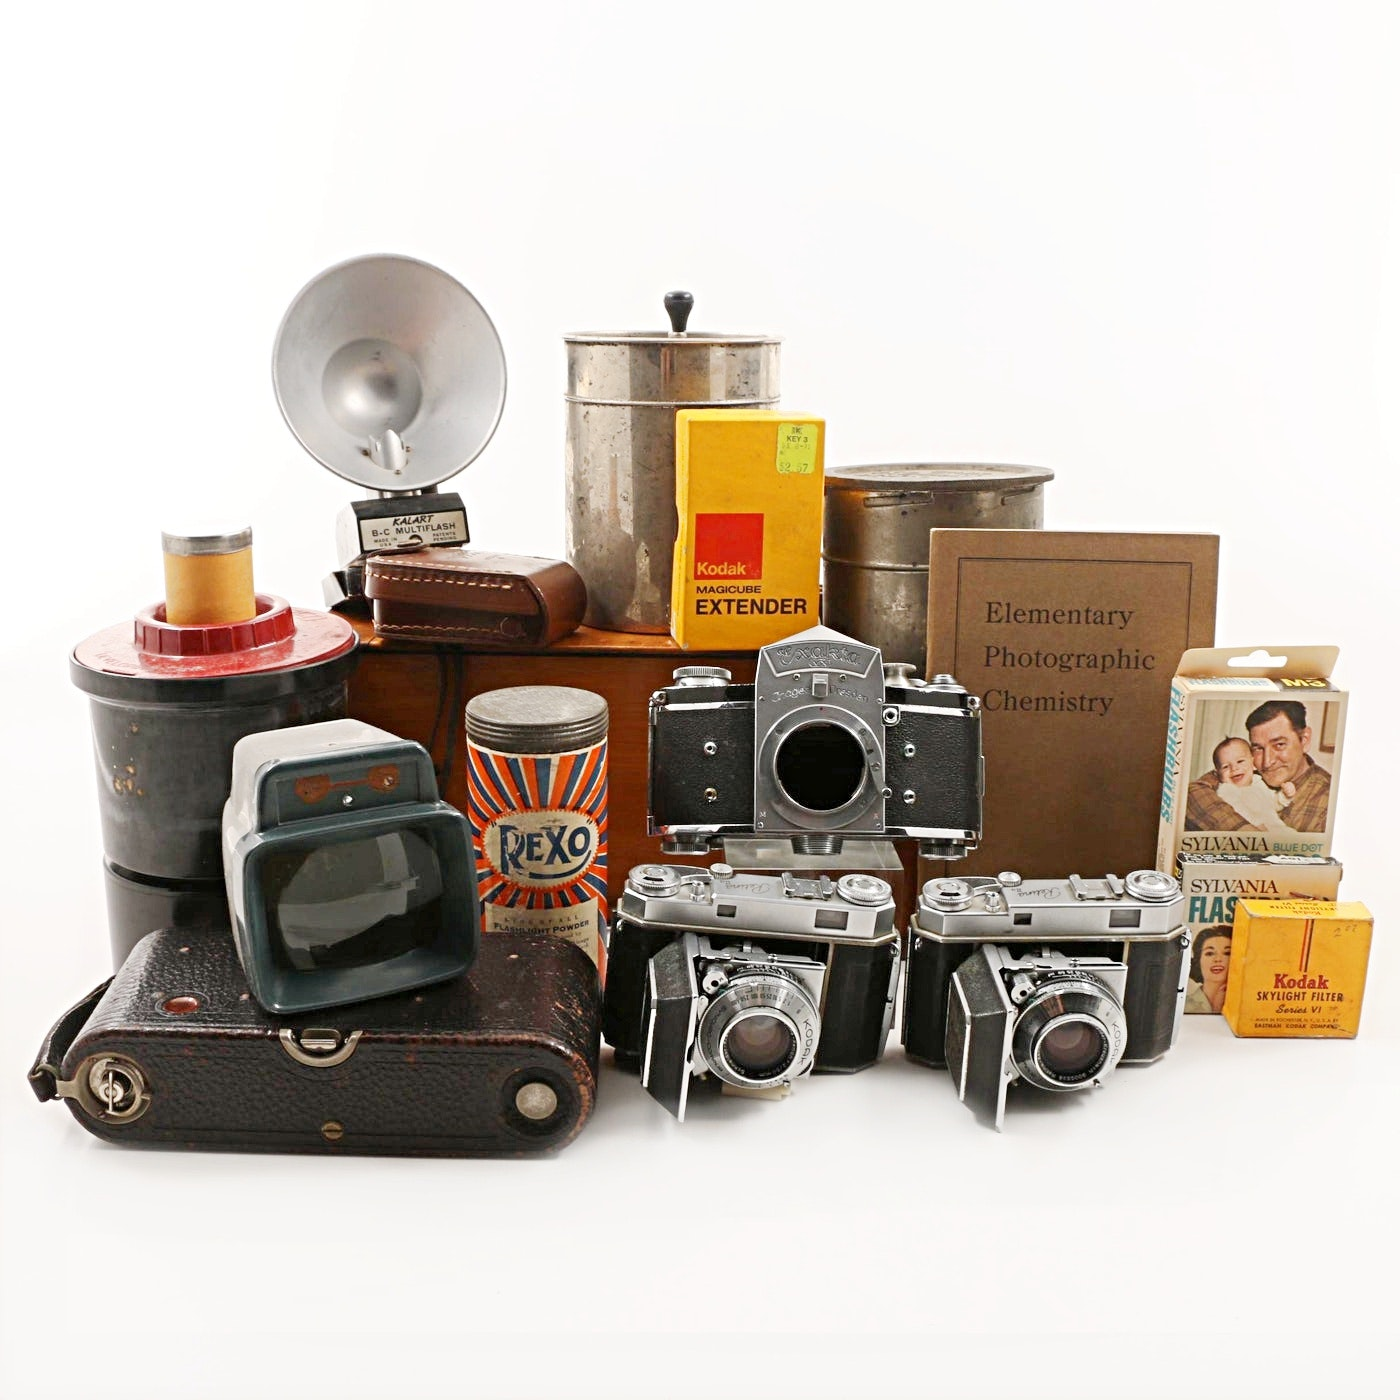 Vintage Kodak and Exakta Cameras with Photography Accessories